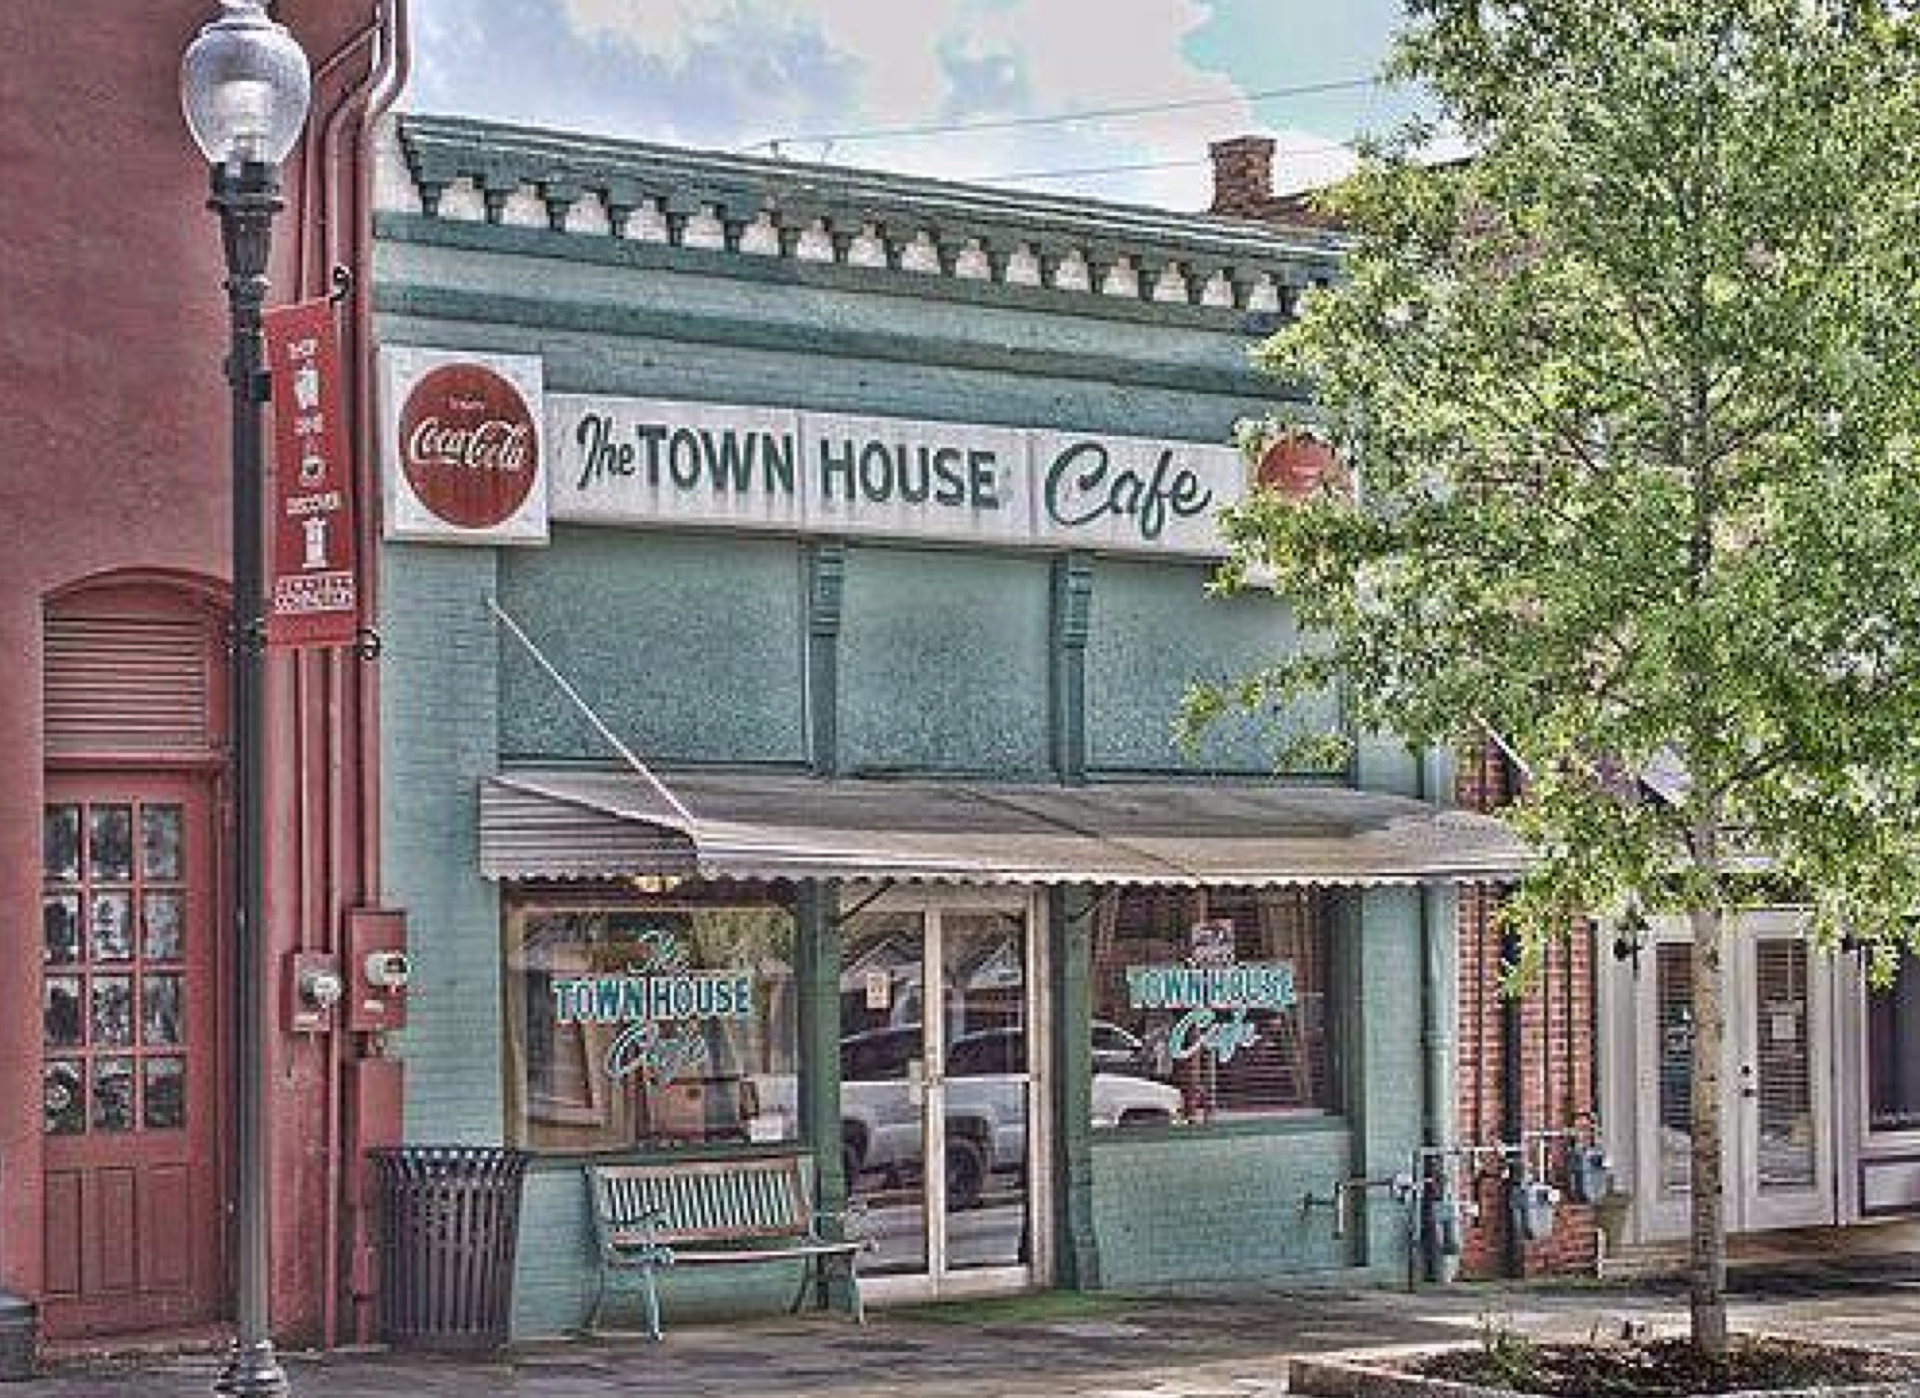 The Town House Cafe  in Covington, Georgia is one of the film locations of  Selma  (and   The Vampire Diaries  ).